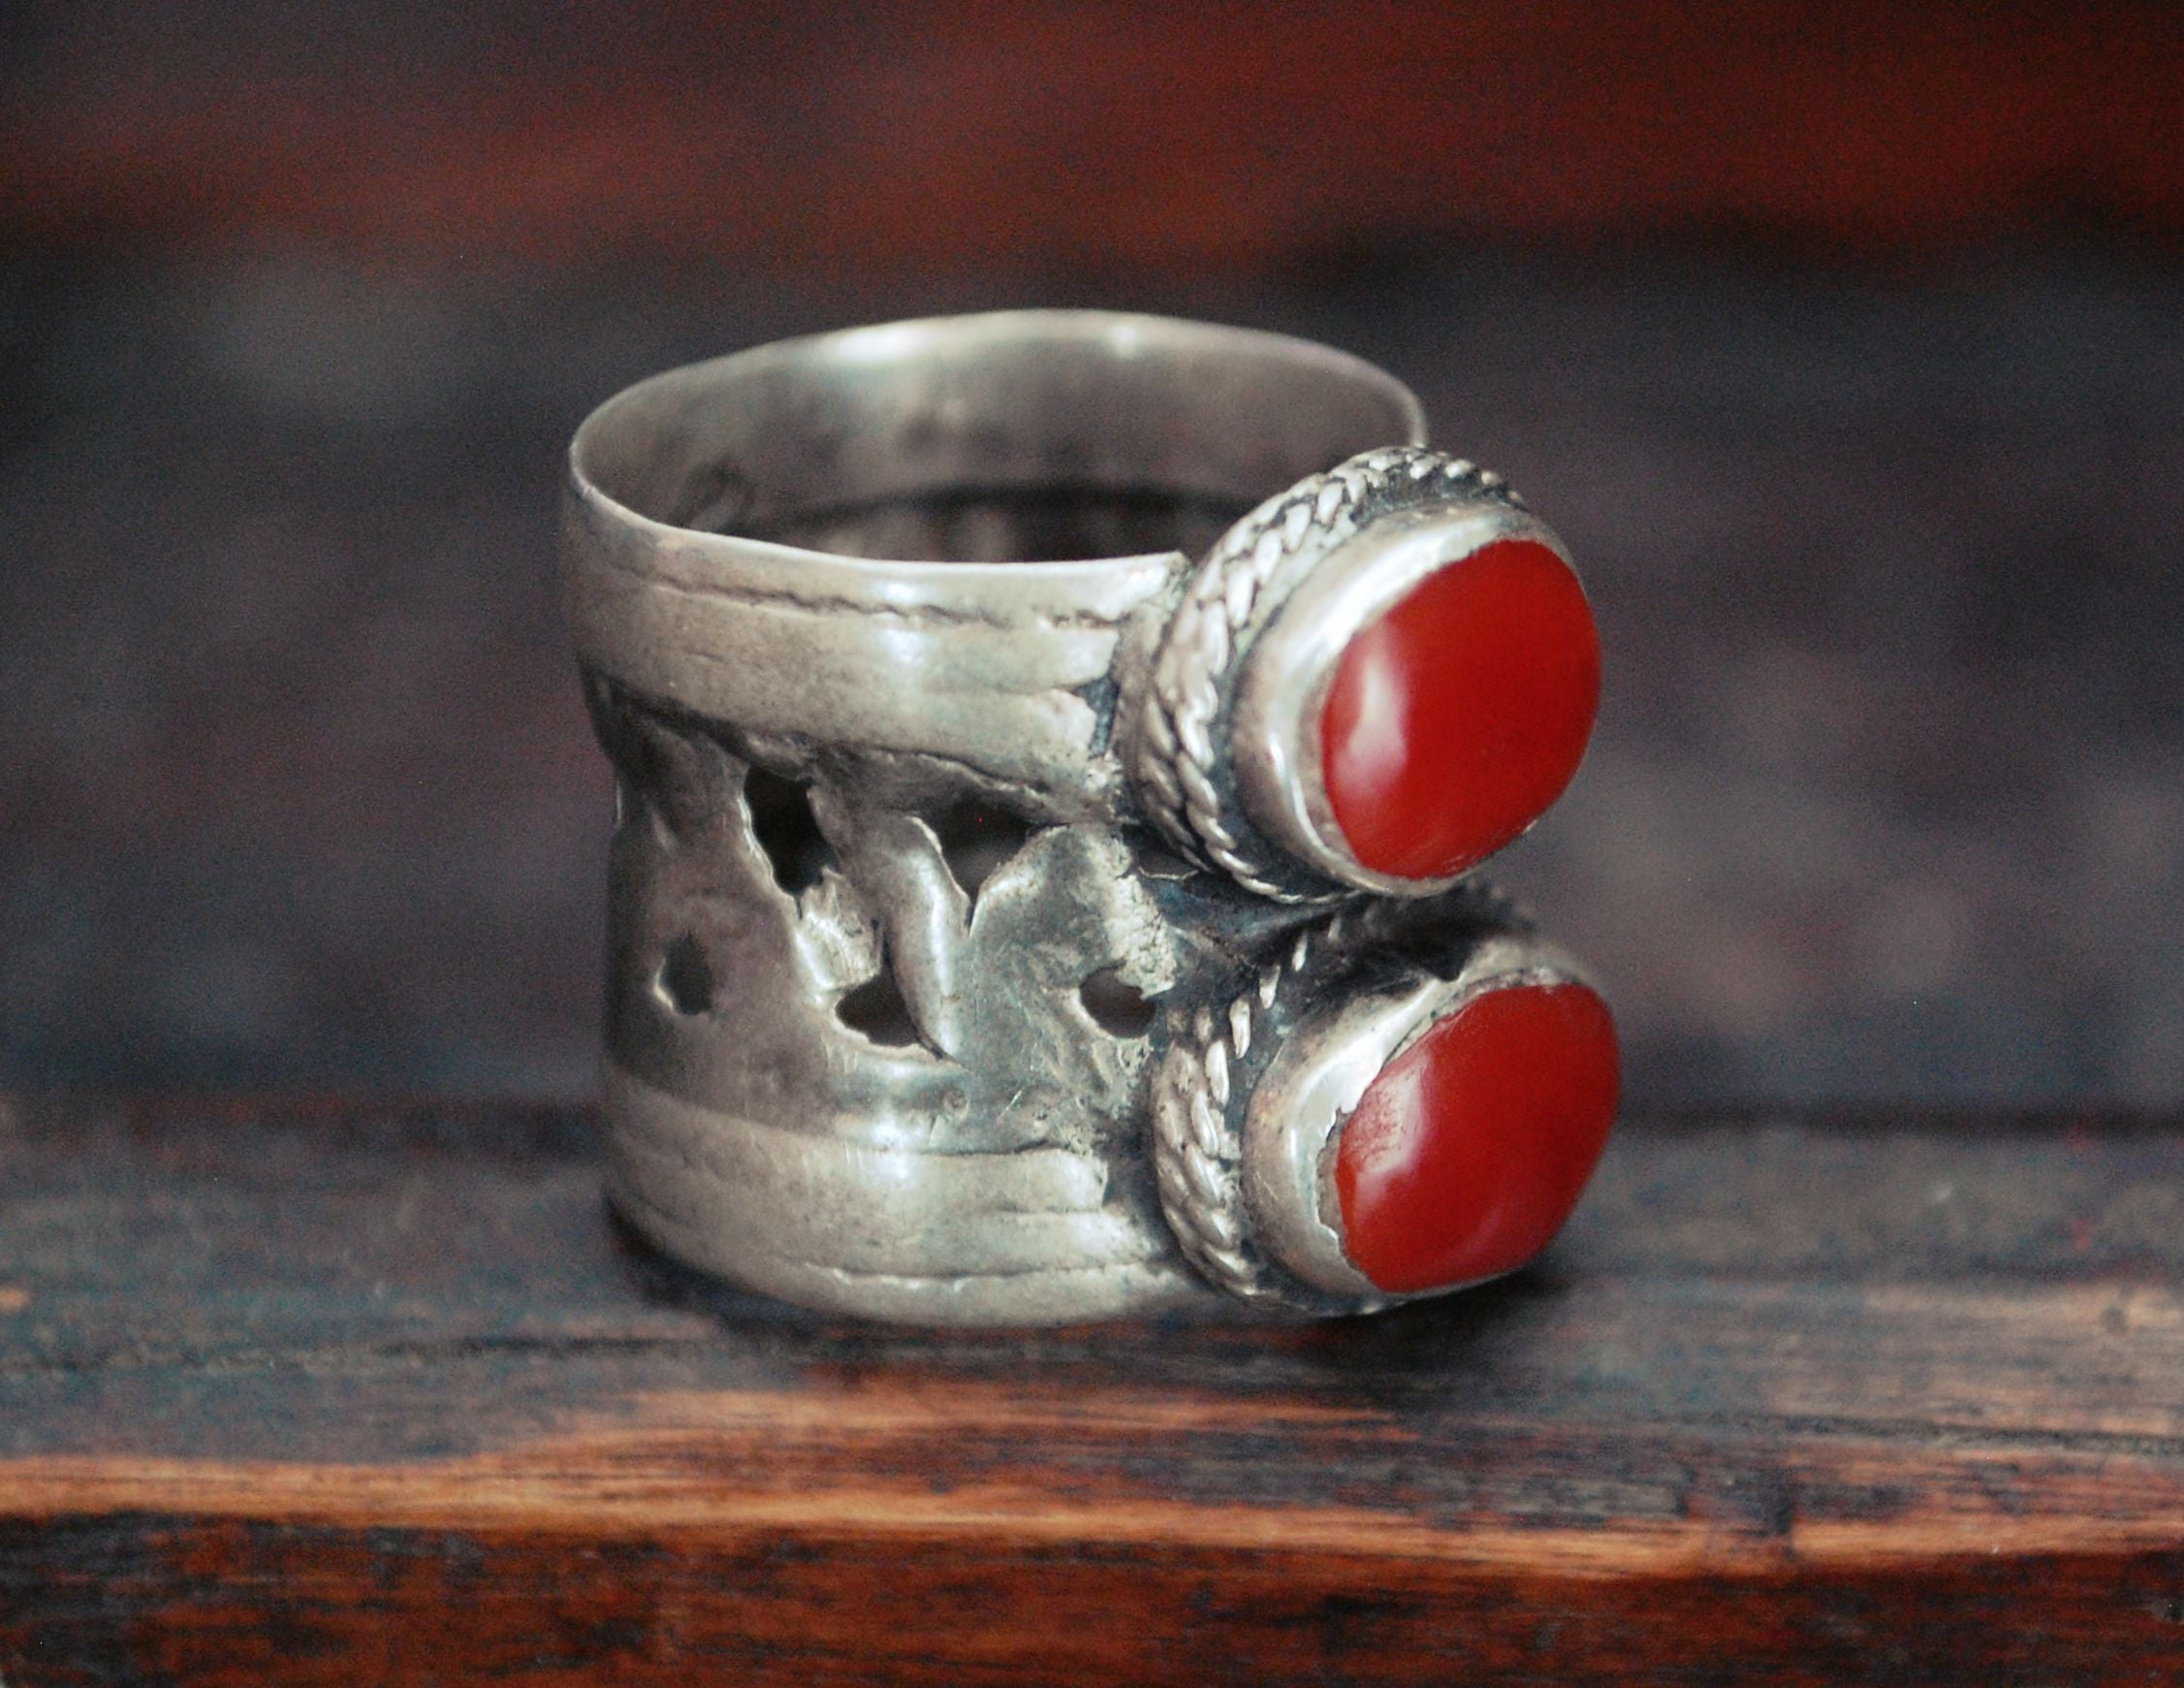 Afghani Old Silver Carnelian Ring - Size 8